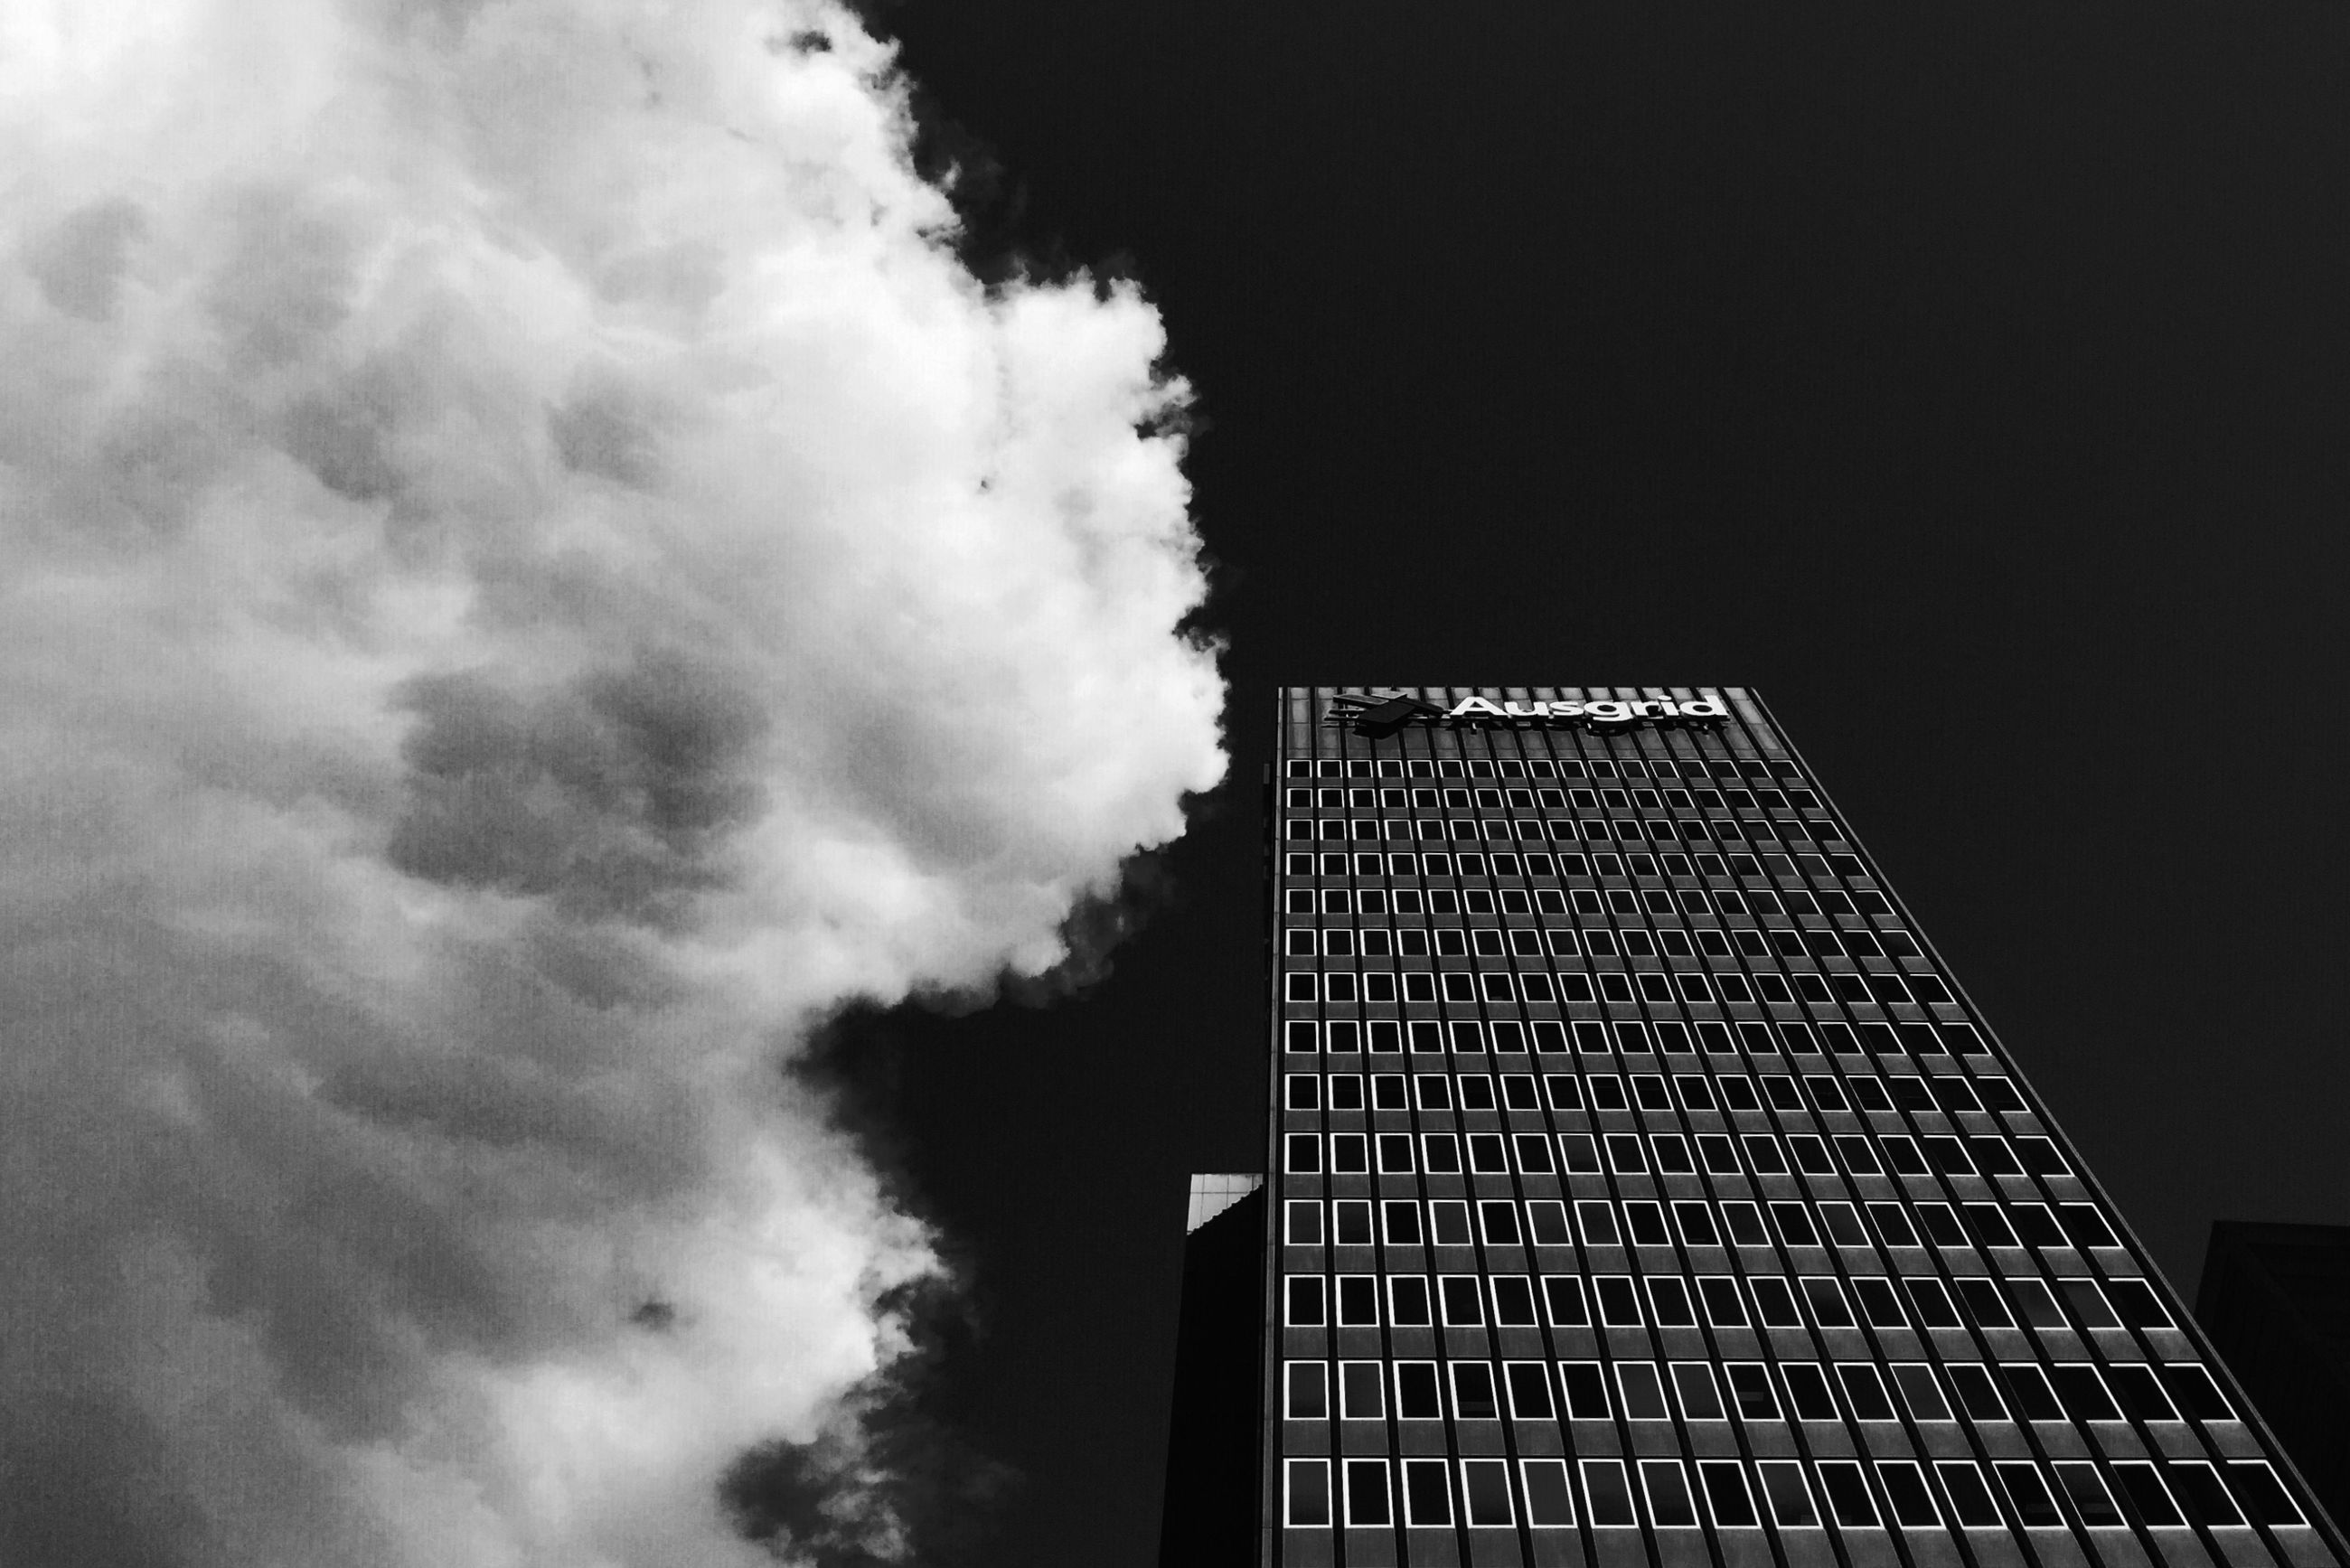 architecture, low angle view, built structure, sky, building exterior, tall - high, tower, modern, cloud - sky, building, outdoors, city, metal, skyscraper, no people, dusk, tall, office building, night, development